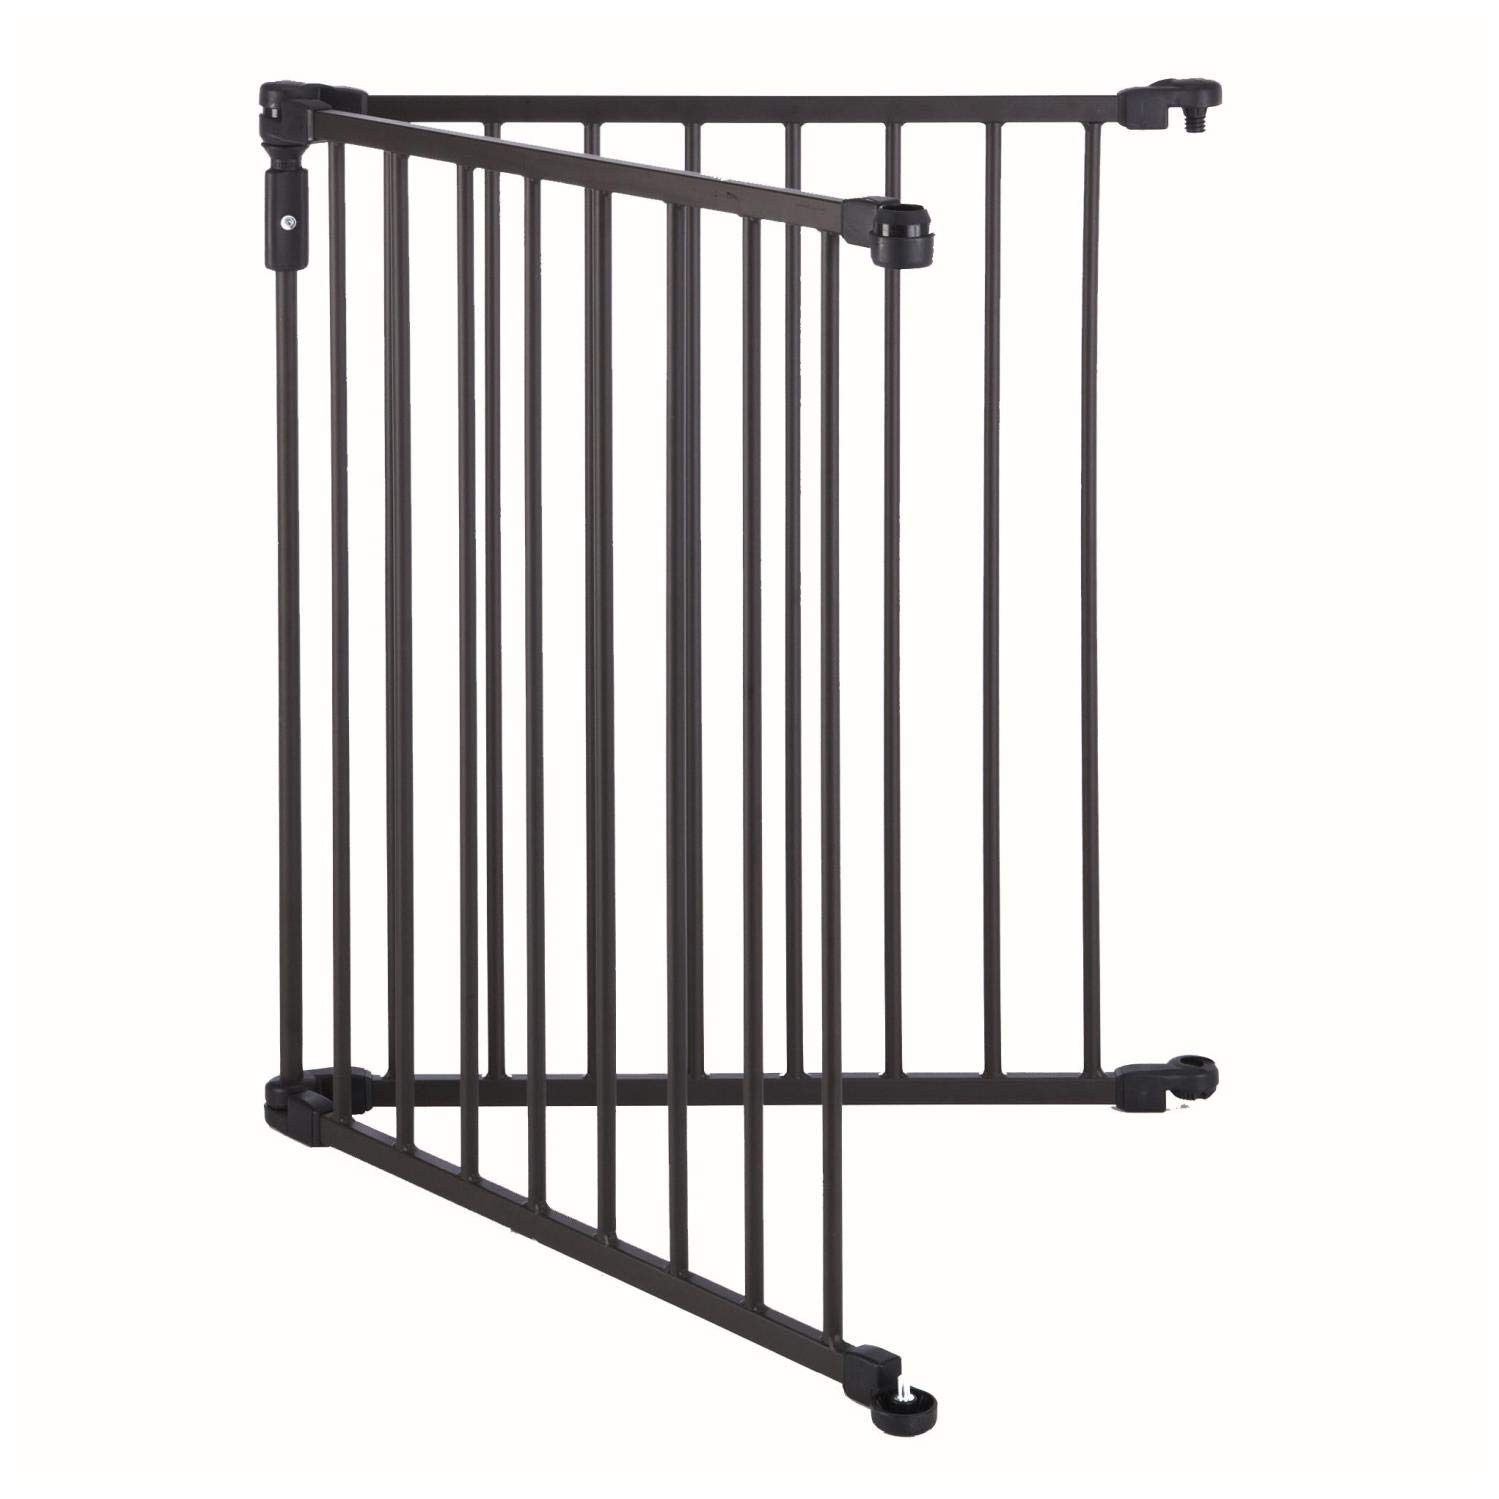 Toddleroo by North States 2-Panel Extension for 3-in-1 Arched D cor Metal Superyard Adds up to 48 for an Extra-Wide gate or Play Yard 48 Width, Matte Bronze